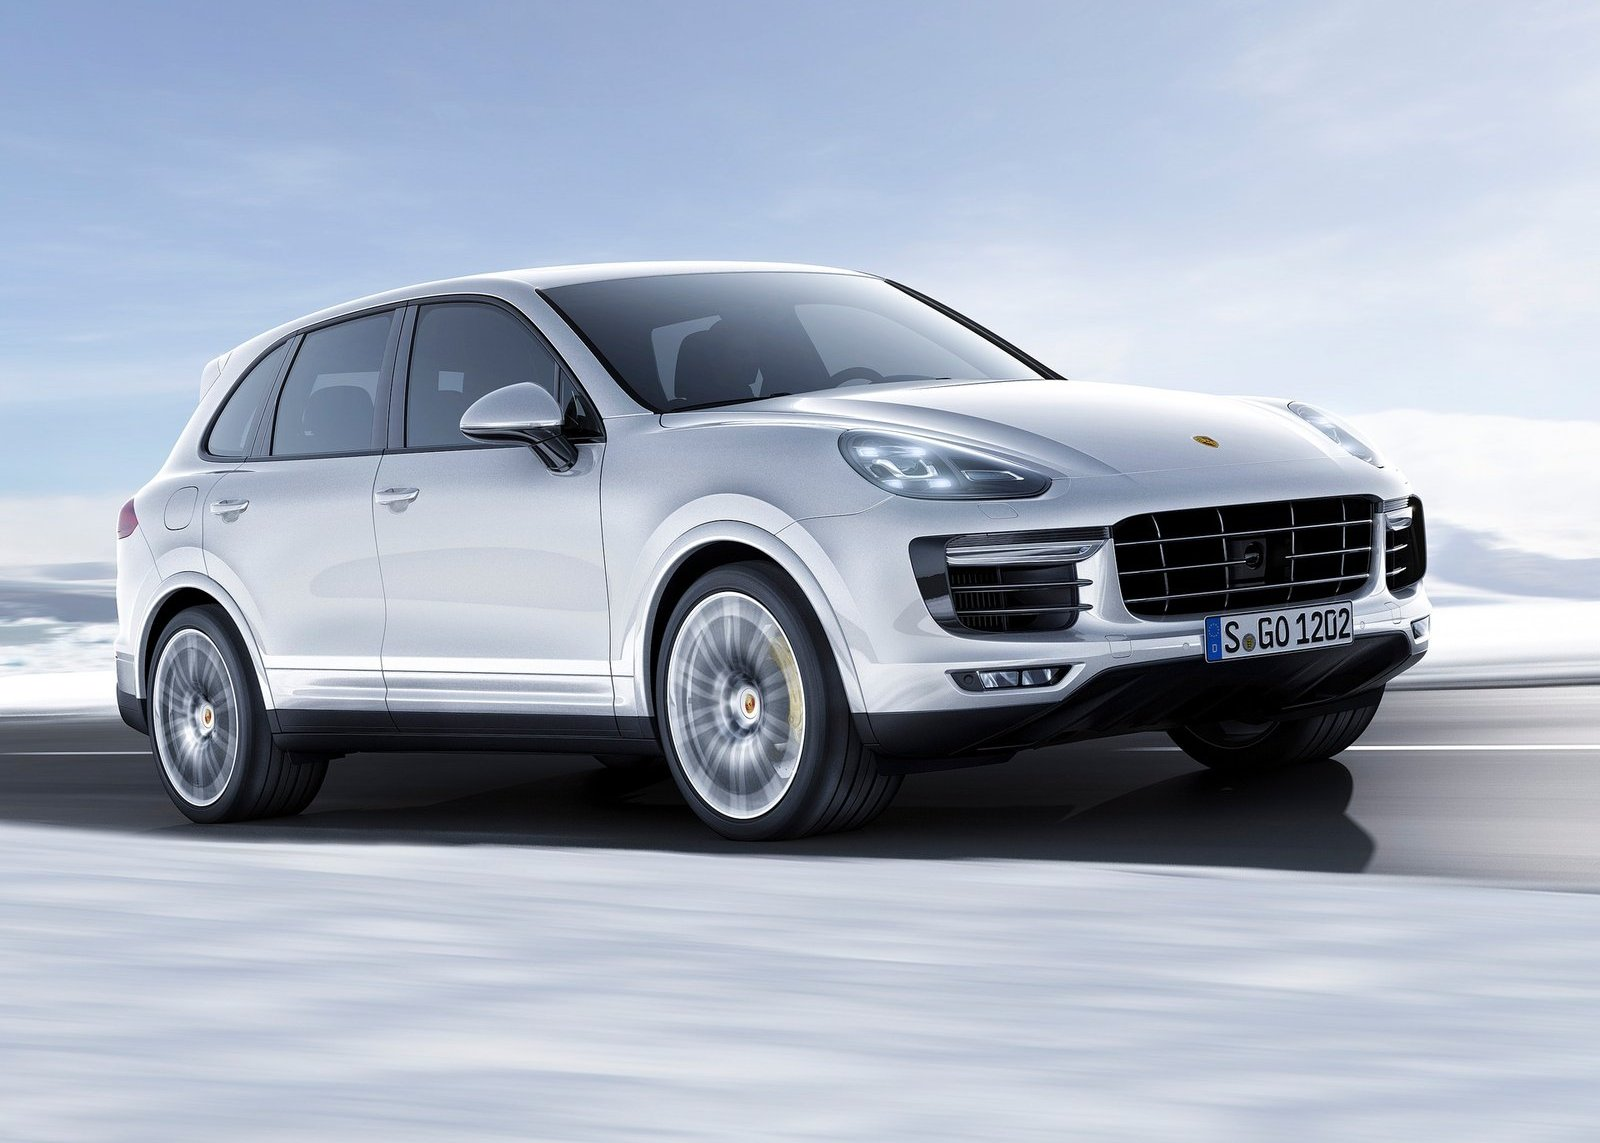 2018 Porsche Cayenne Coupe SUV wallpaper